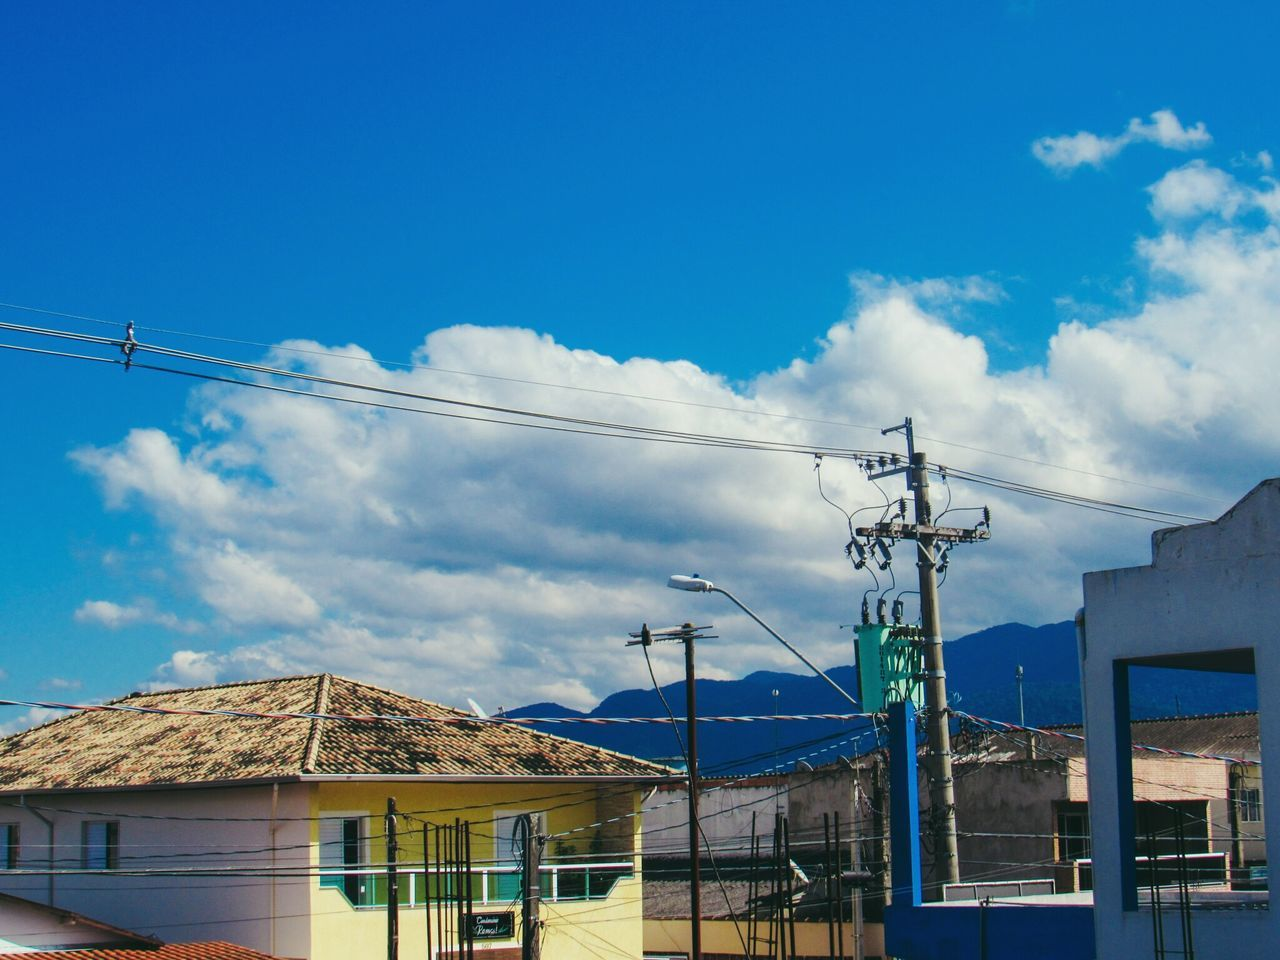 cable, power line, connection, blue, day, outdoors, no people, sky, power supply, electricity pylon, electricity, low angle view, architecture, technology, building exterior, nature